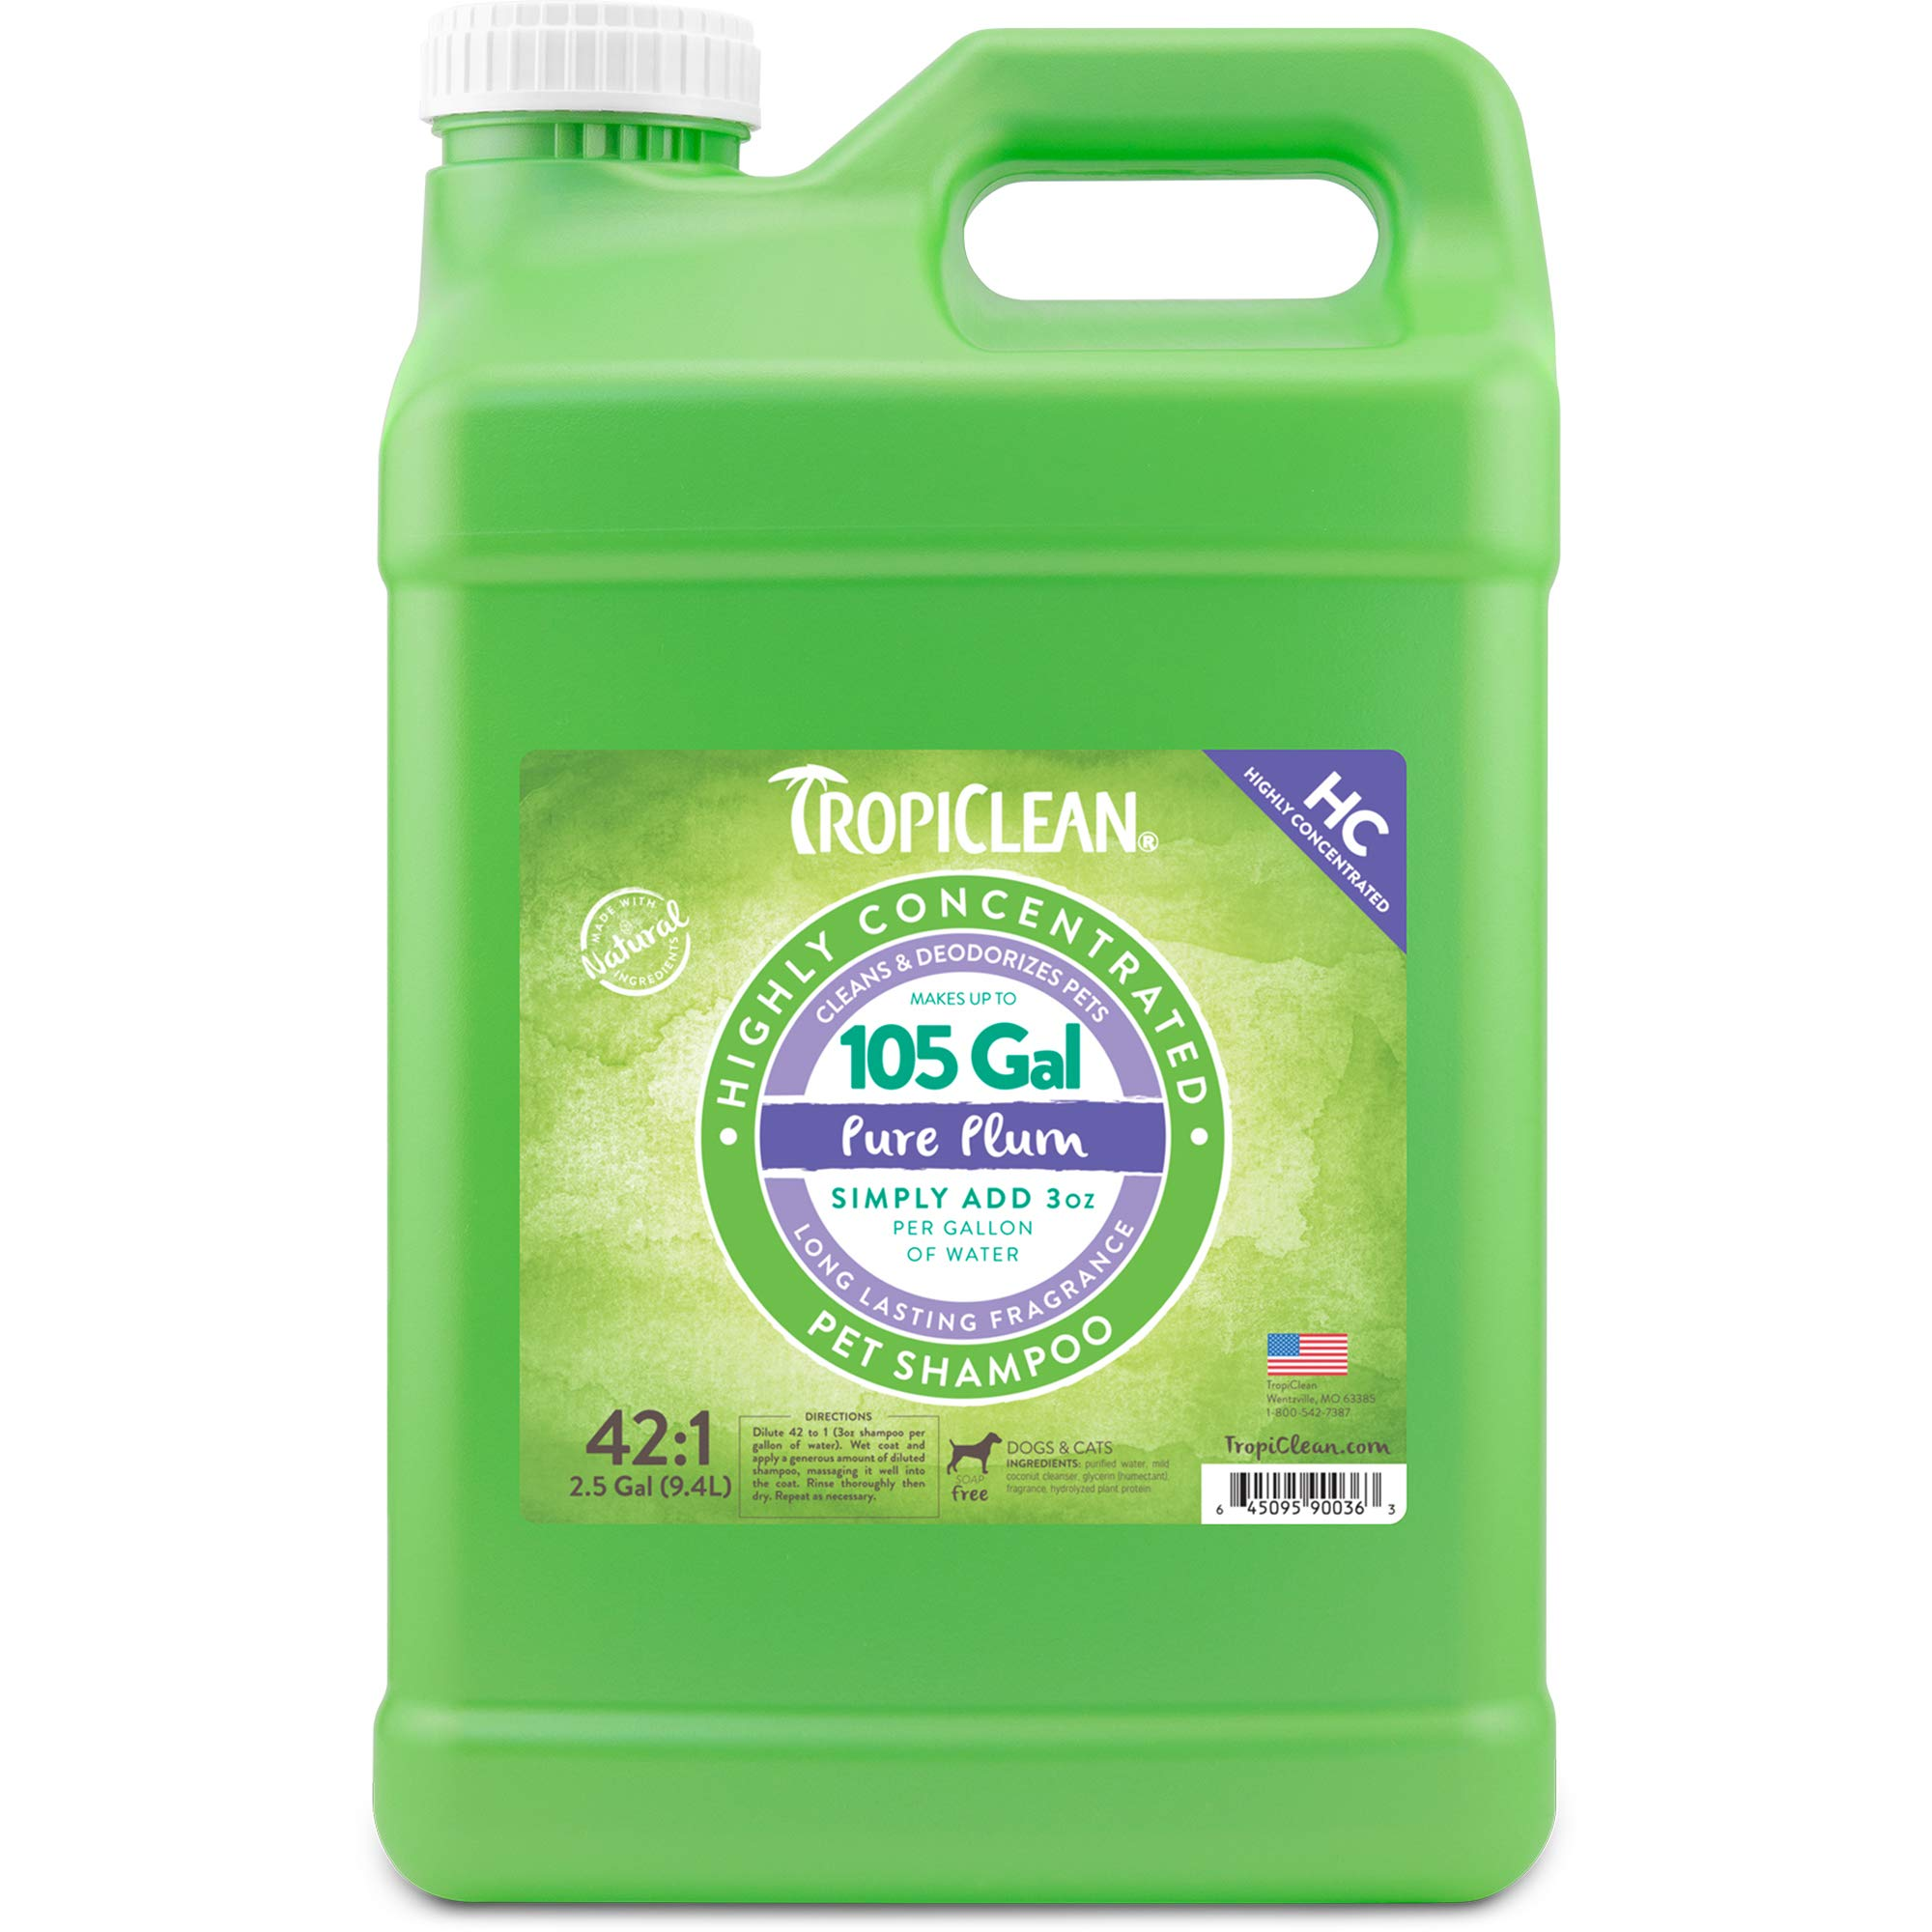 TropiClean Pure Plum High Concentrate Shampoo for Pets, 2.5 gal, Made in USA